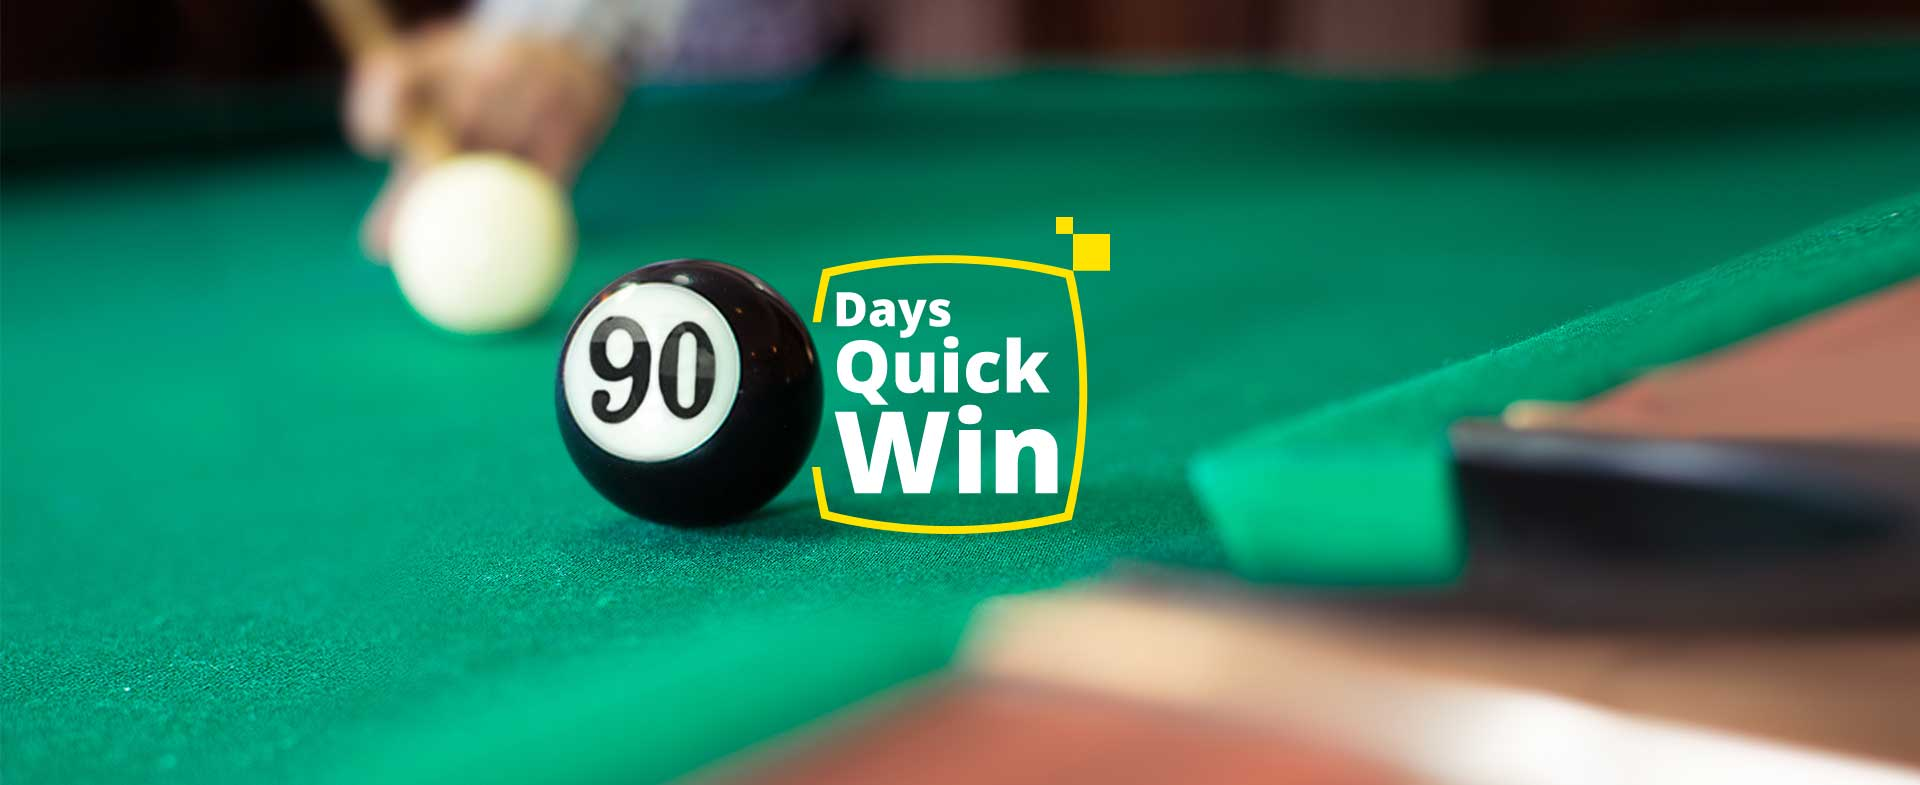 90 days quick win